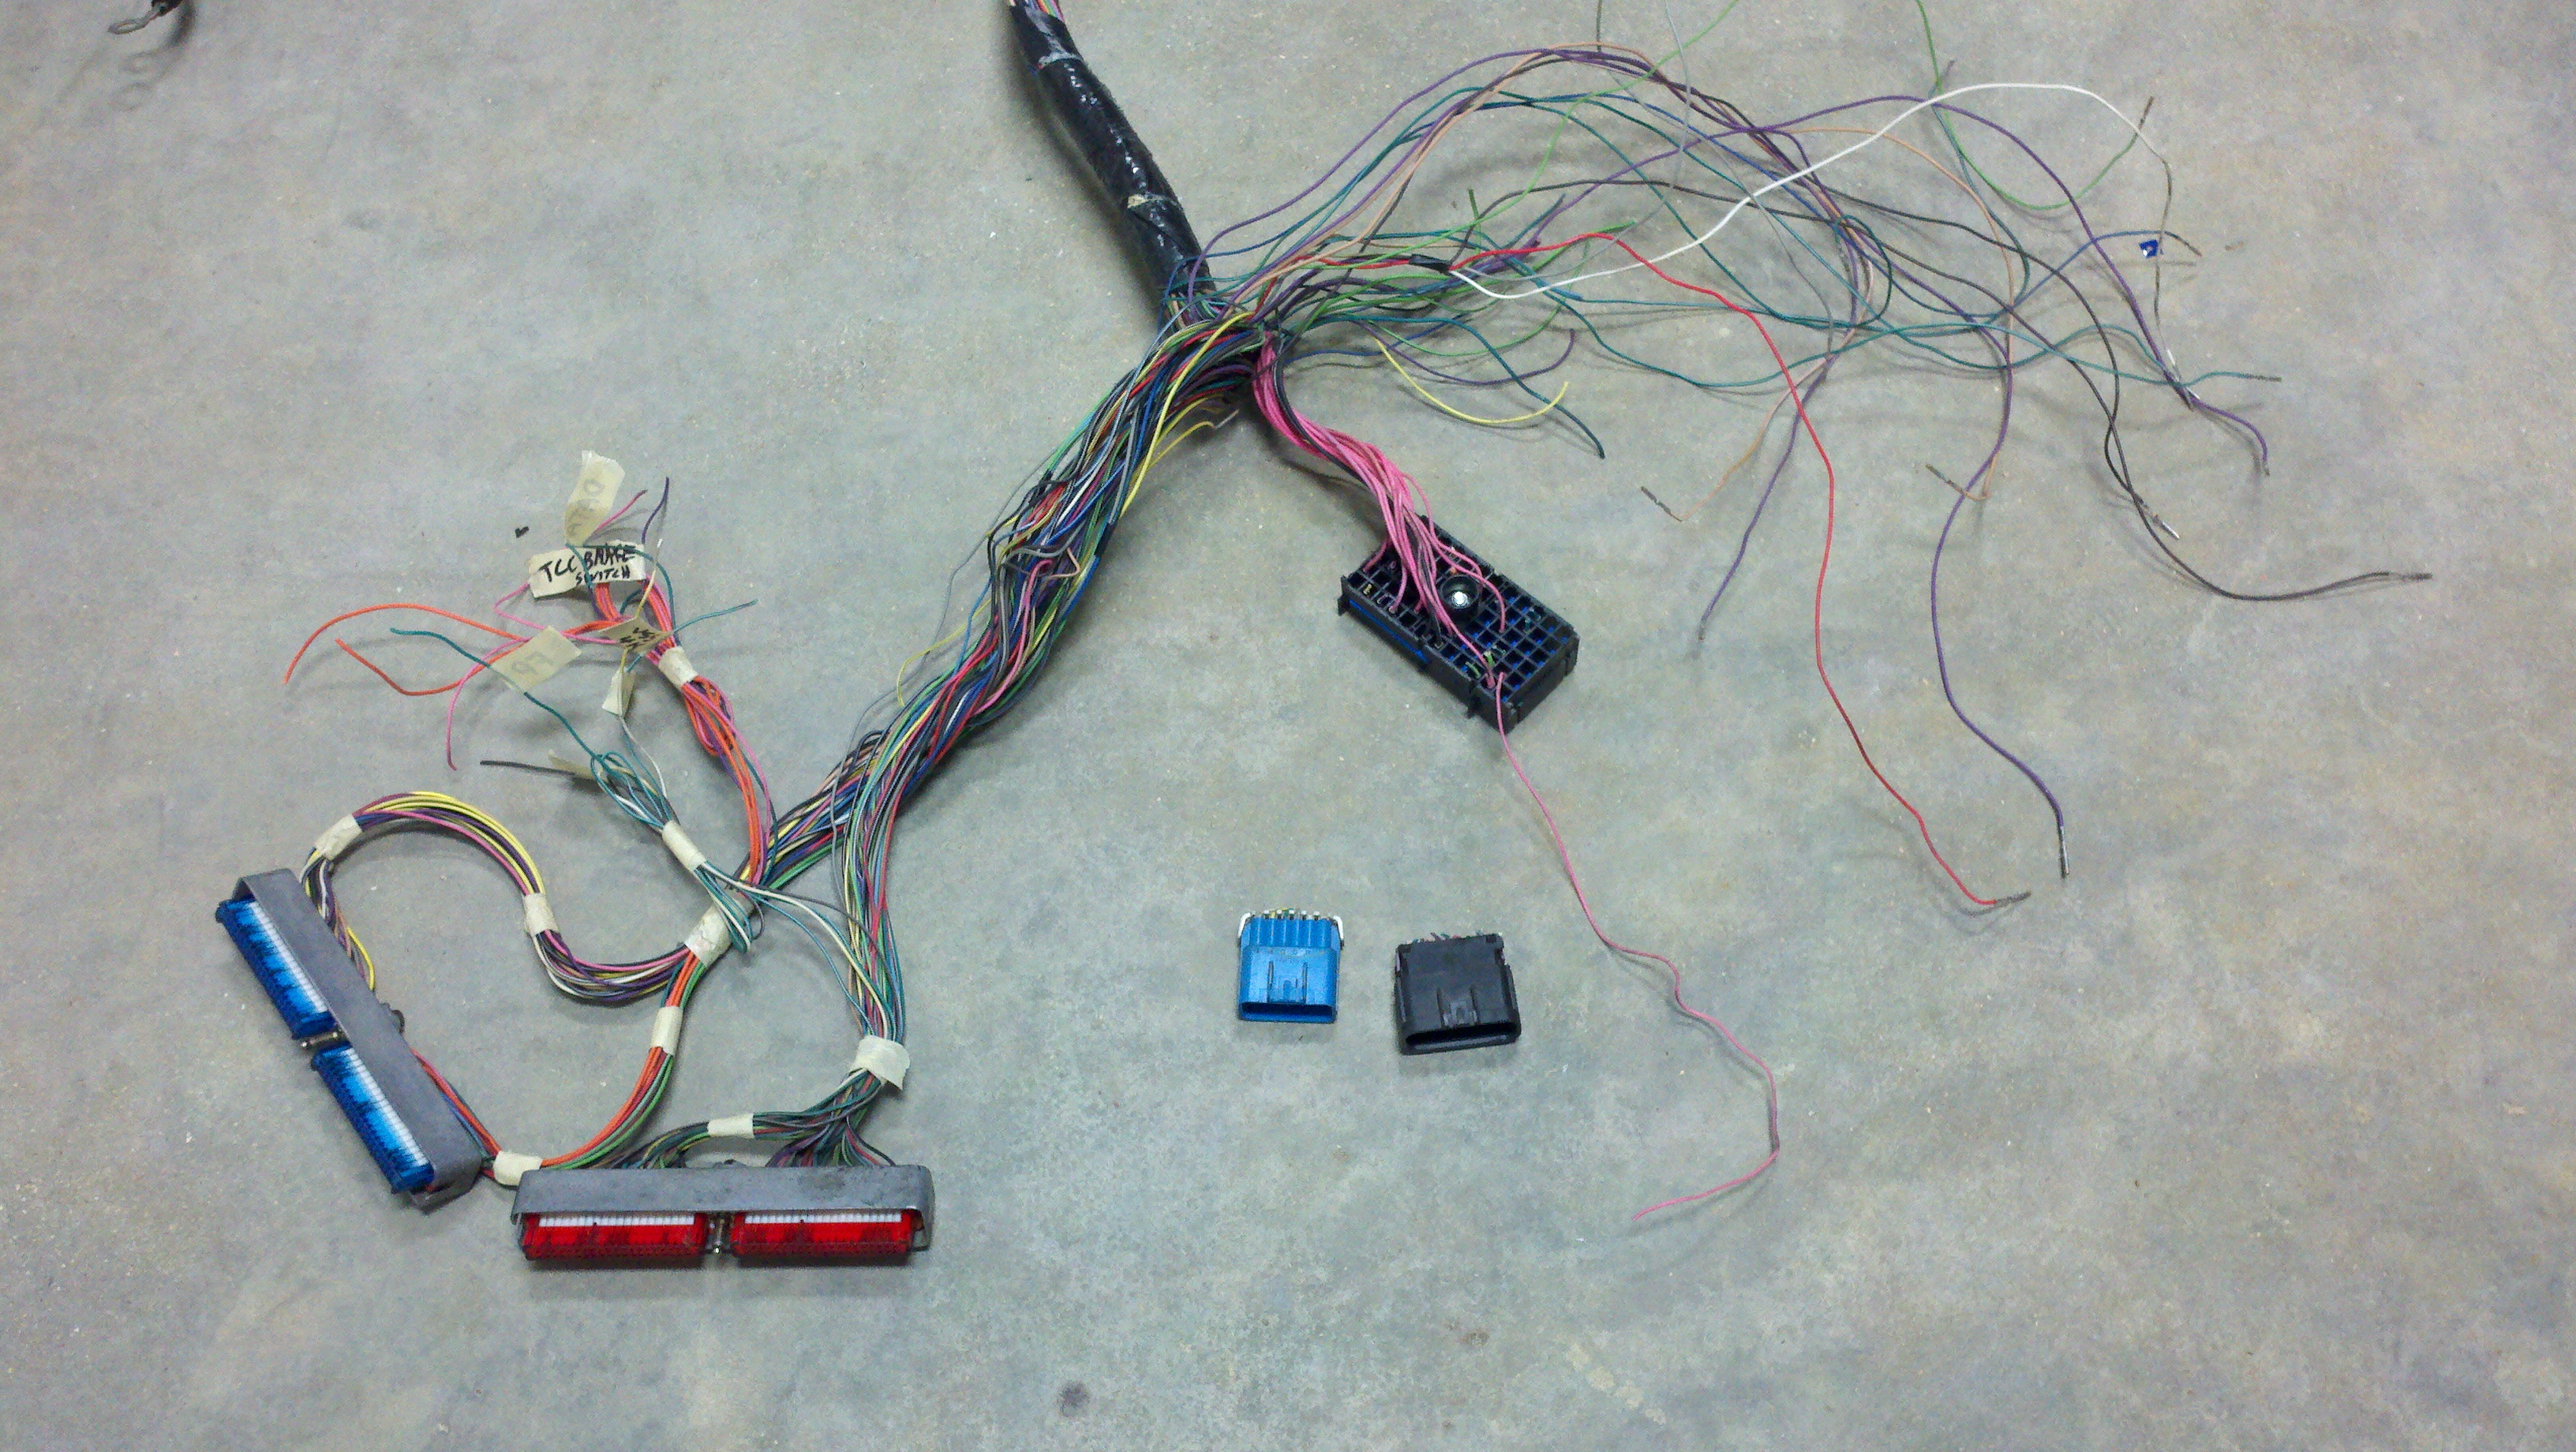 Ecm Wiring Harness Free Diagram For You 89 Tpi Picture Chevy Vortec Get Image About Motor